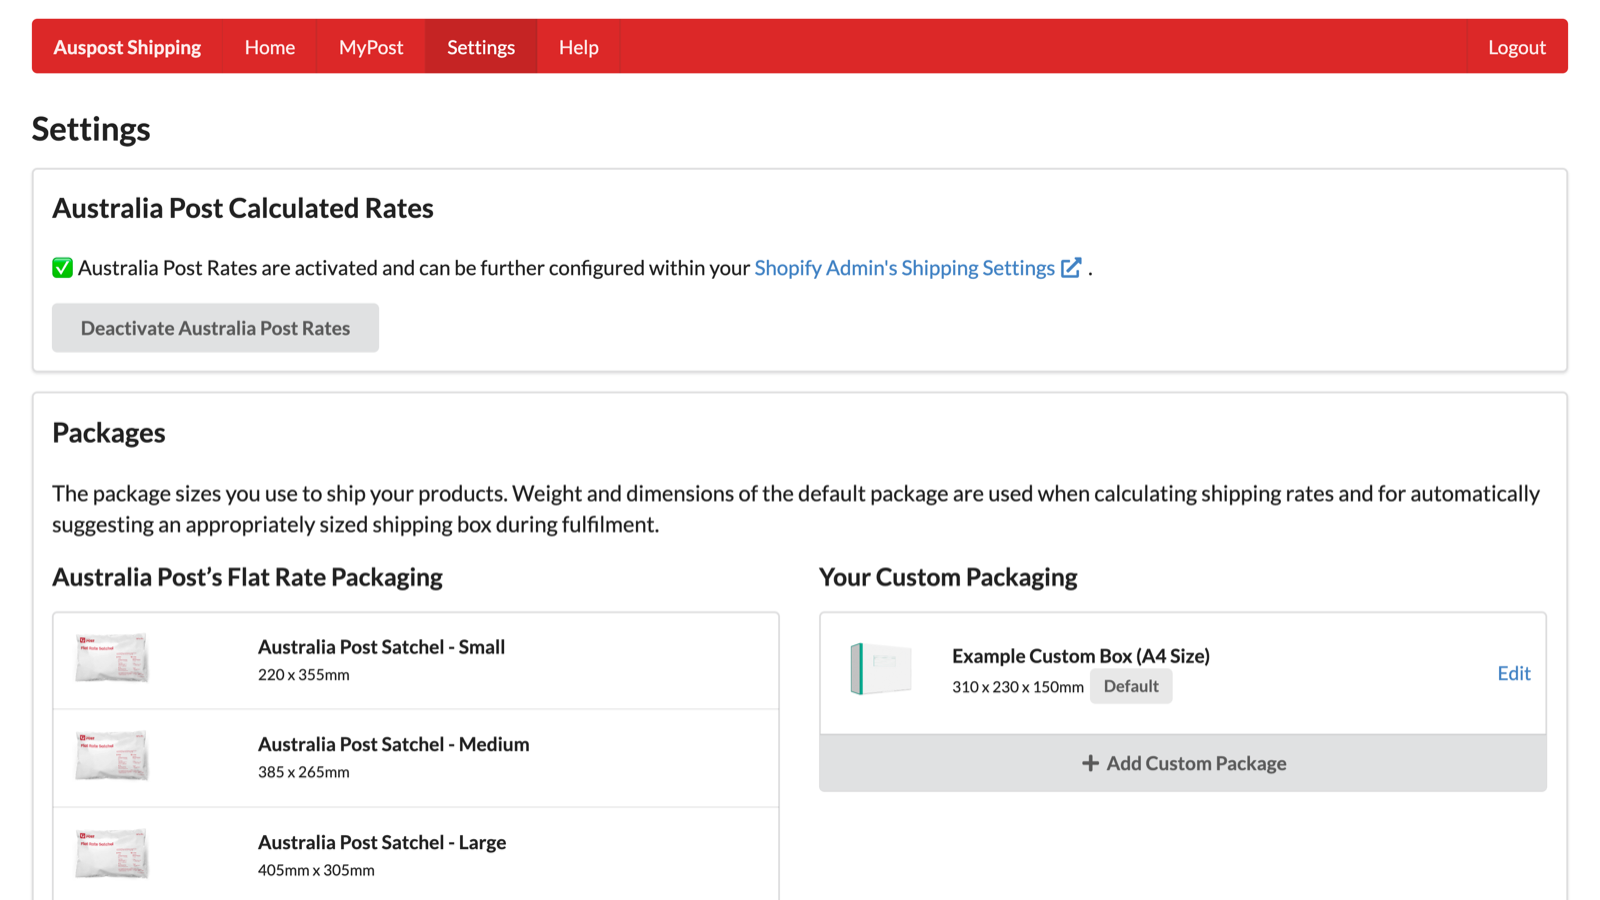 Australia Postage & Labels Settings and Preferences